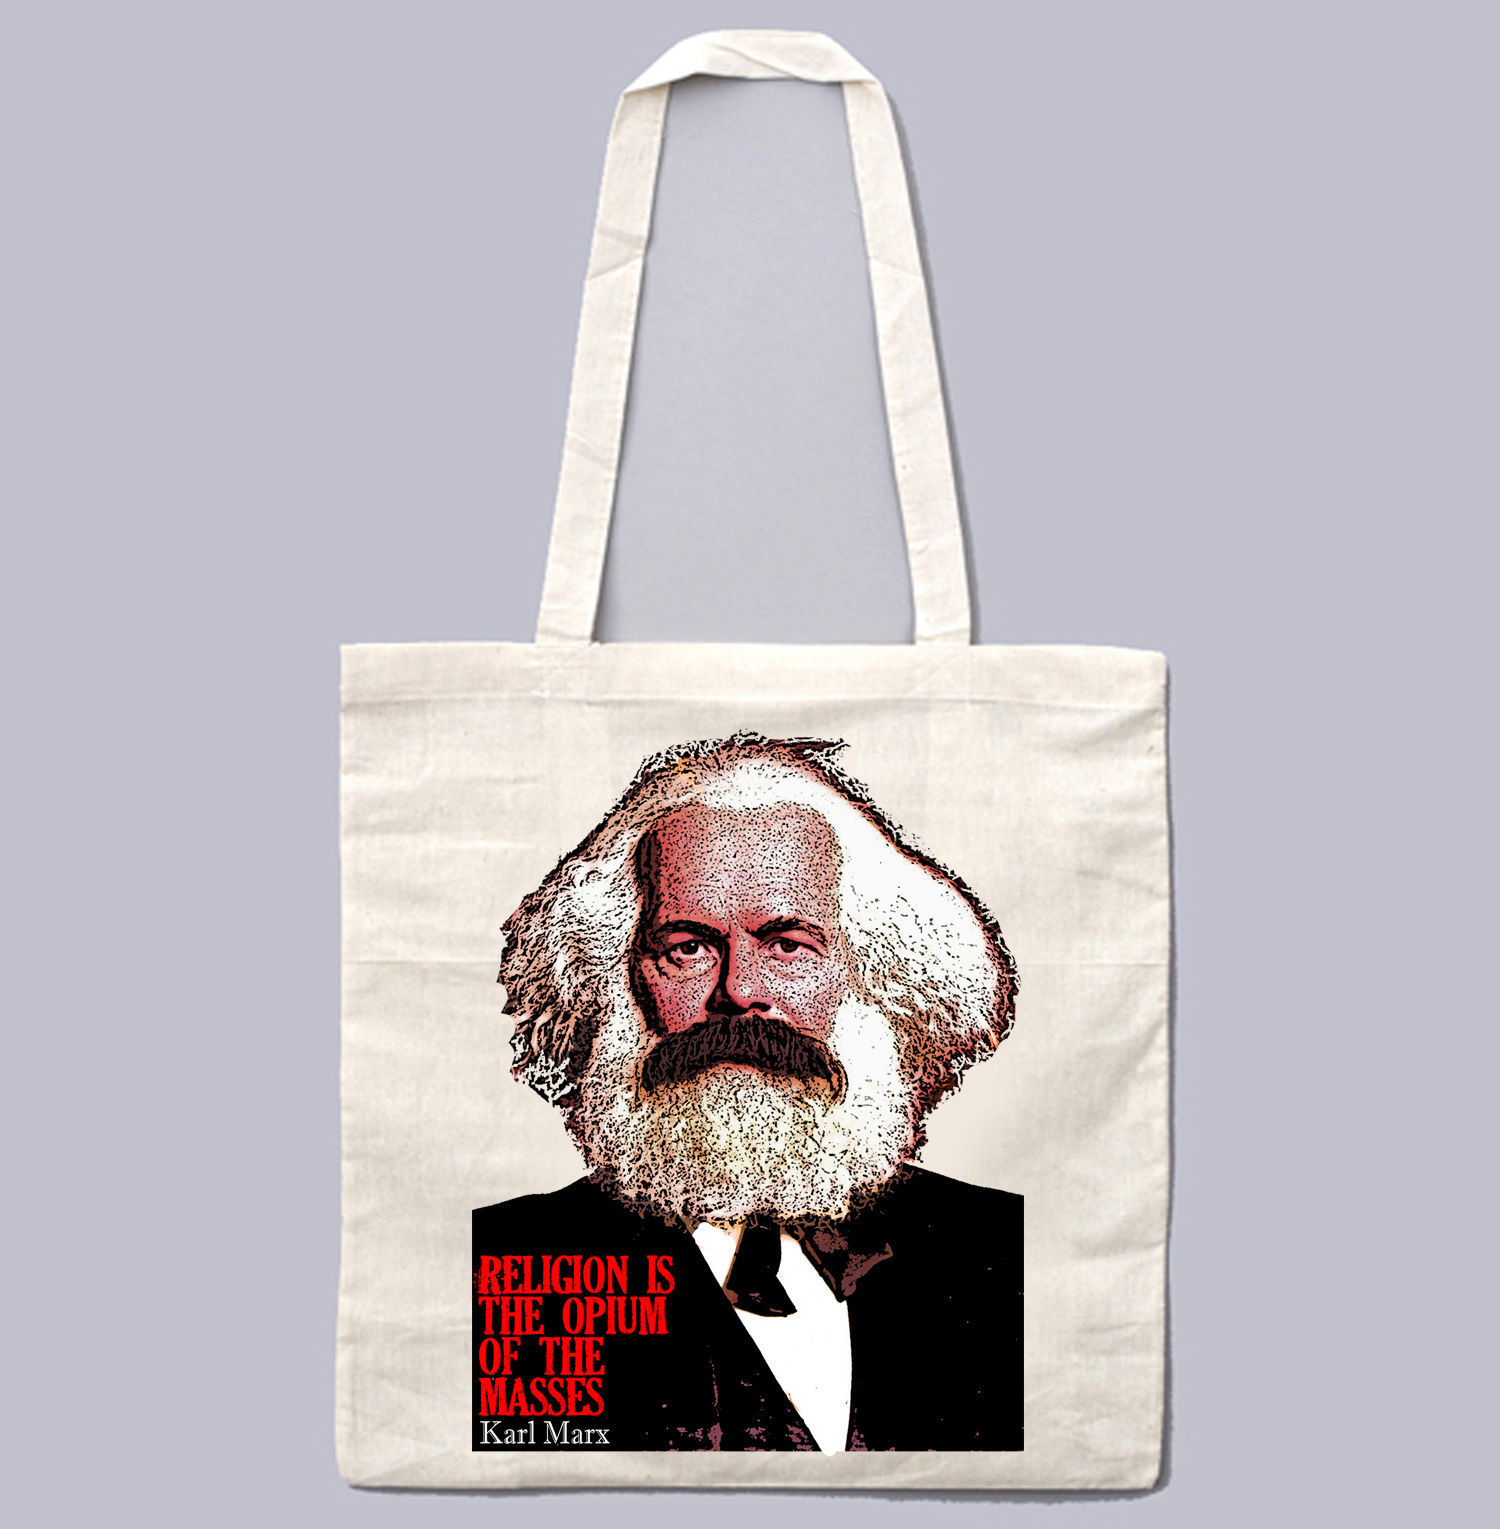 KARL MARX QUOTE ON RELIGION - NEW AMAZING GRAPHIC WHITE HAND BAG/TOTE BAG